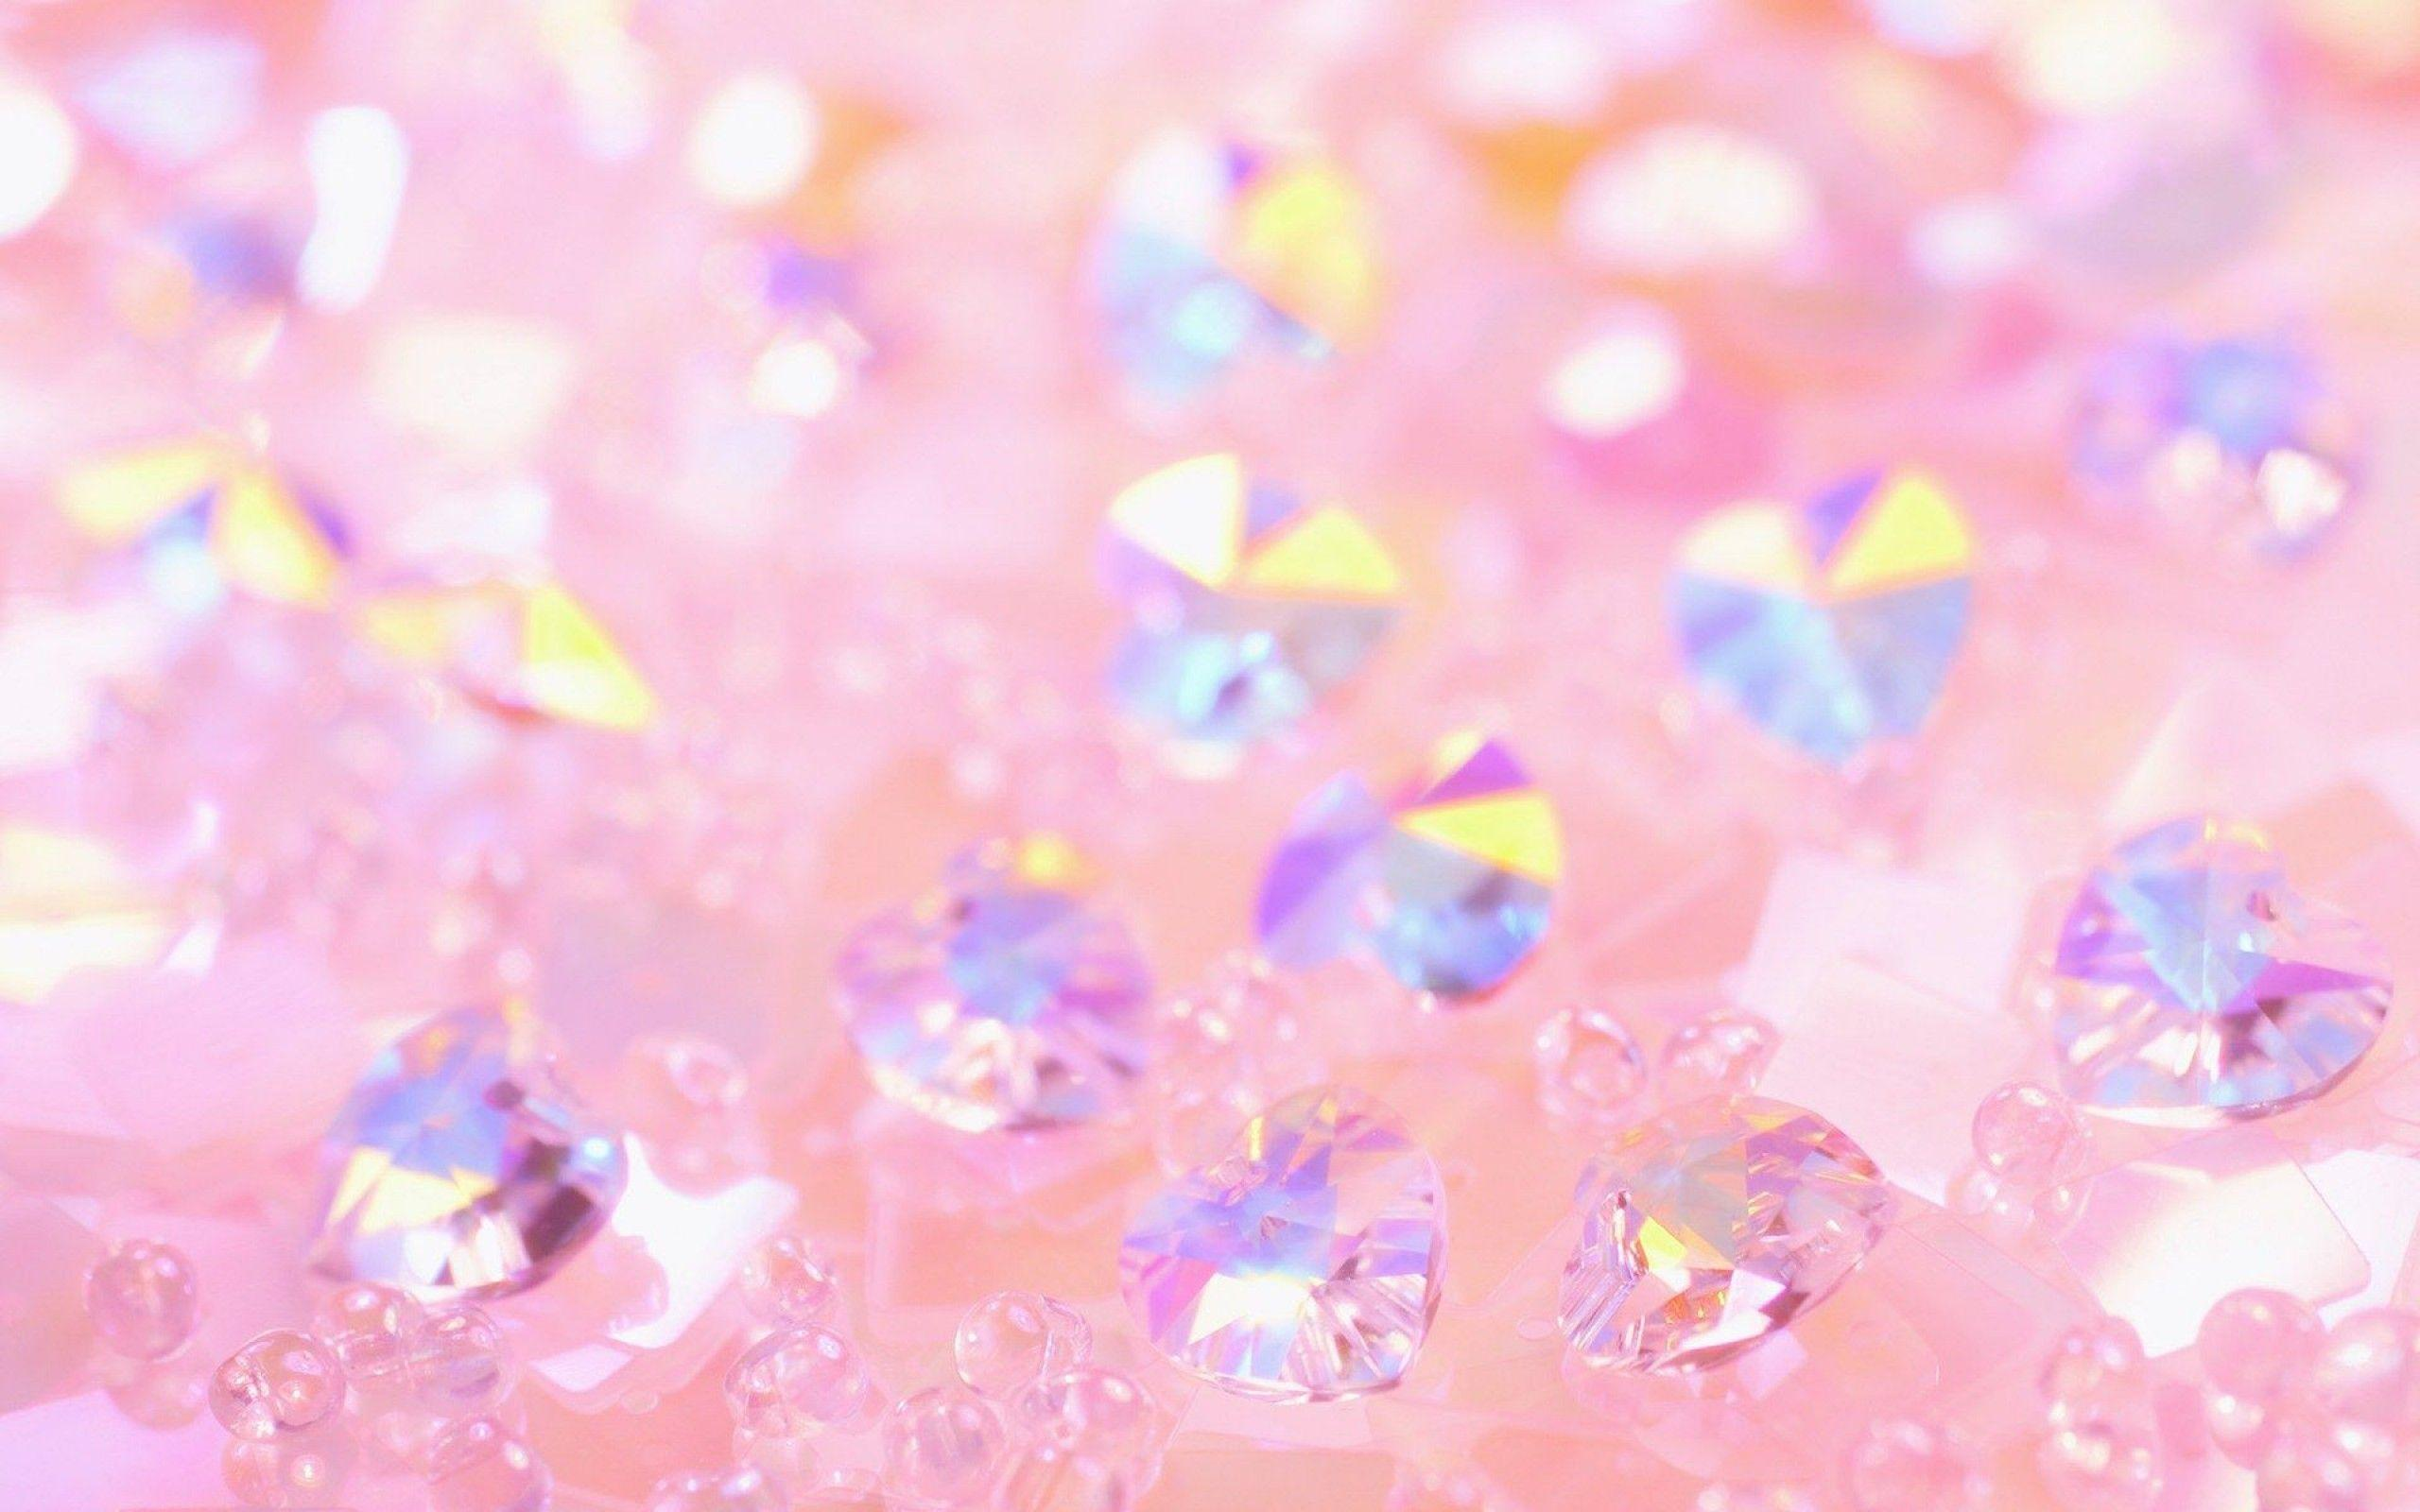 pink glitter wallpapers wallpaper cave pink glitter wallpapers wallpaper cave